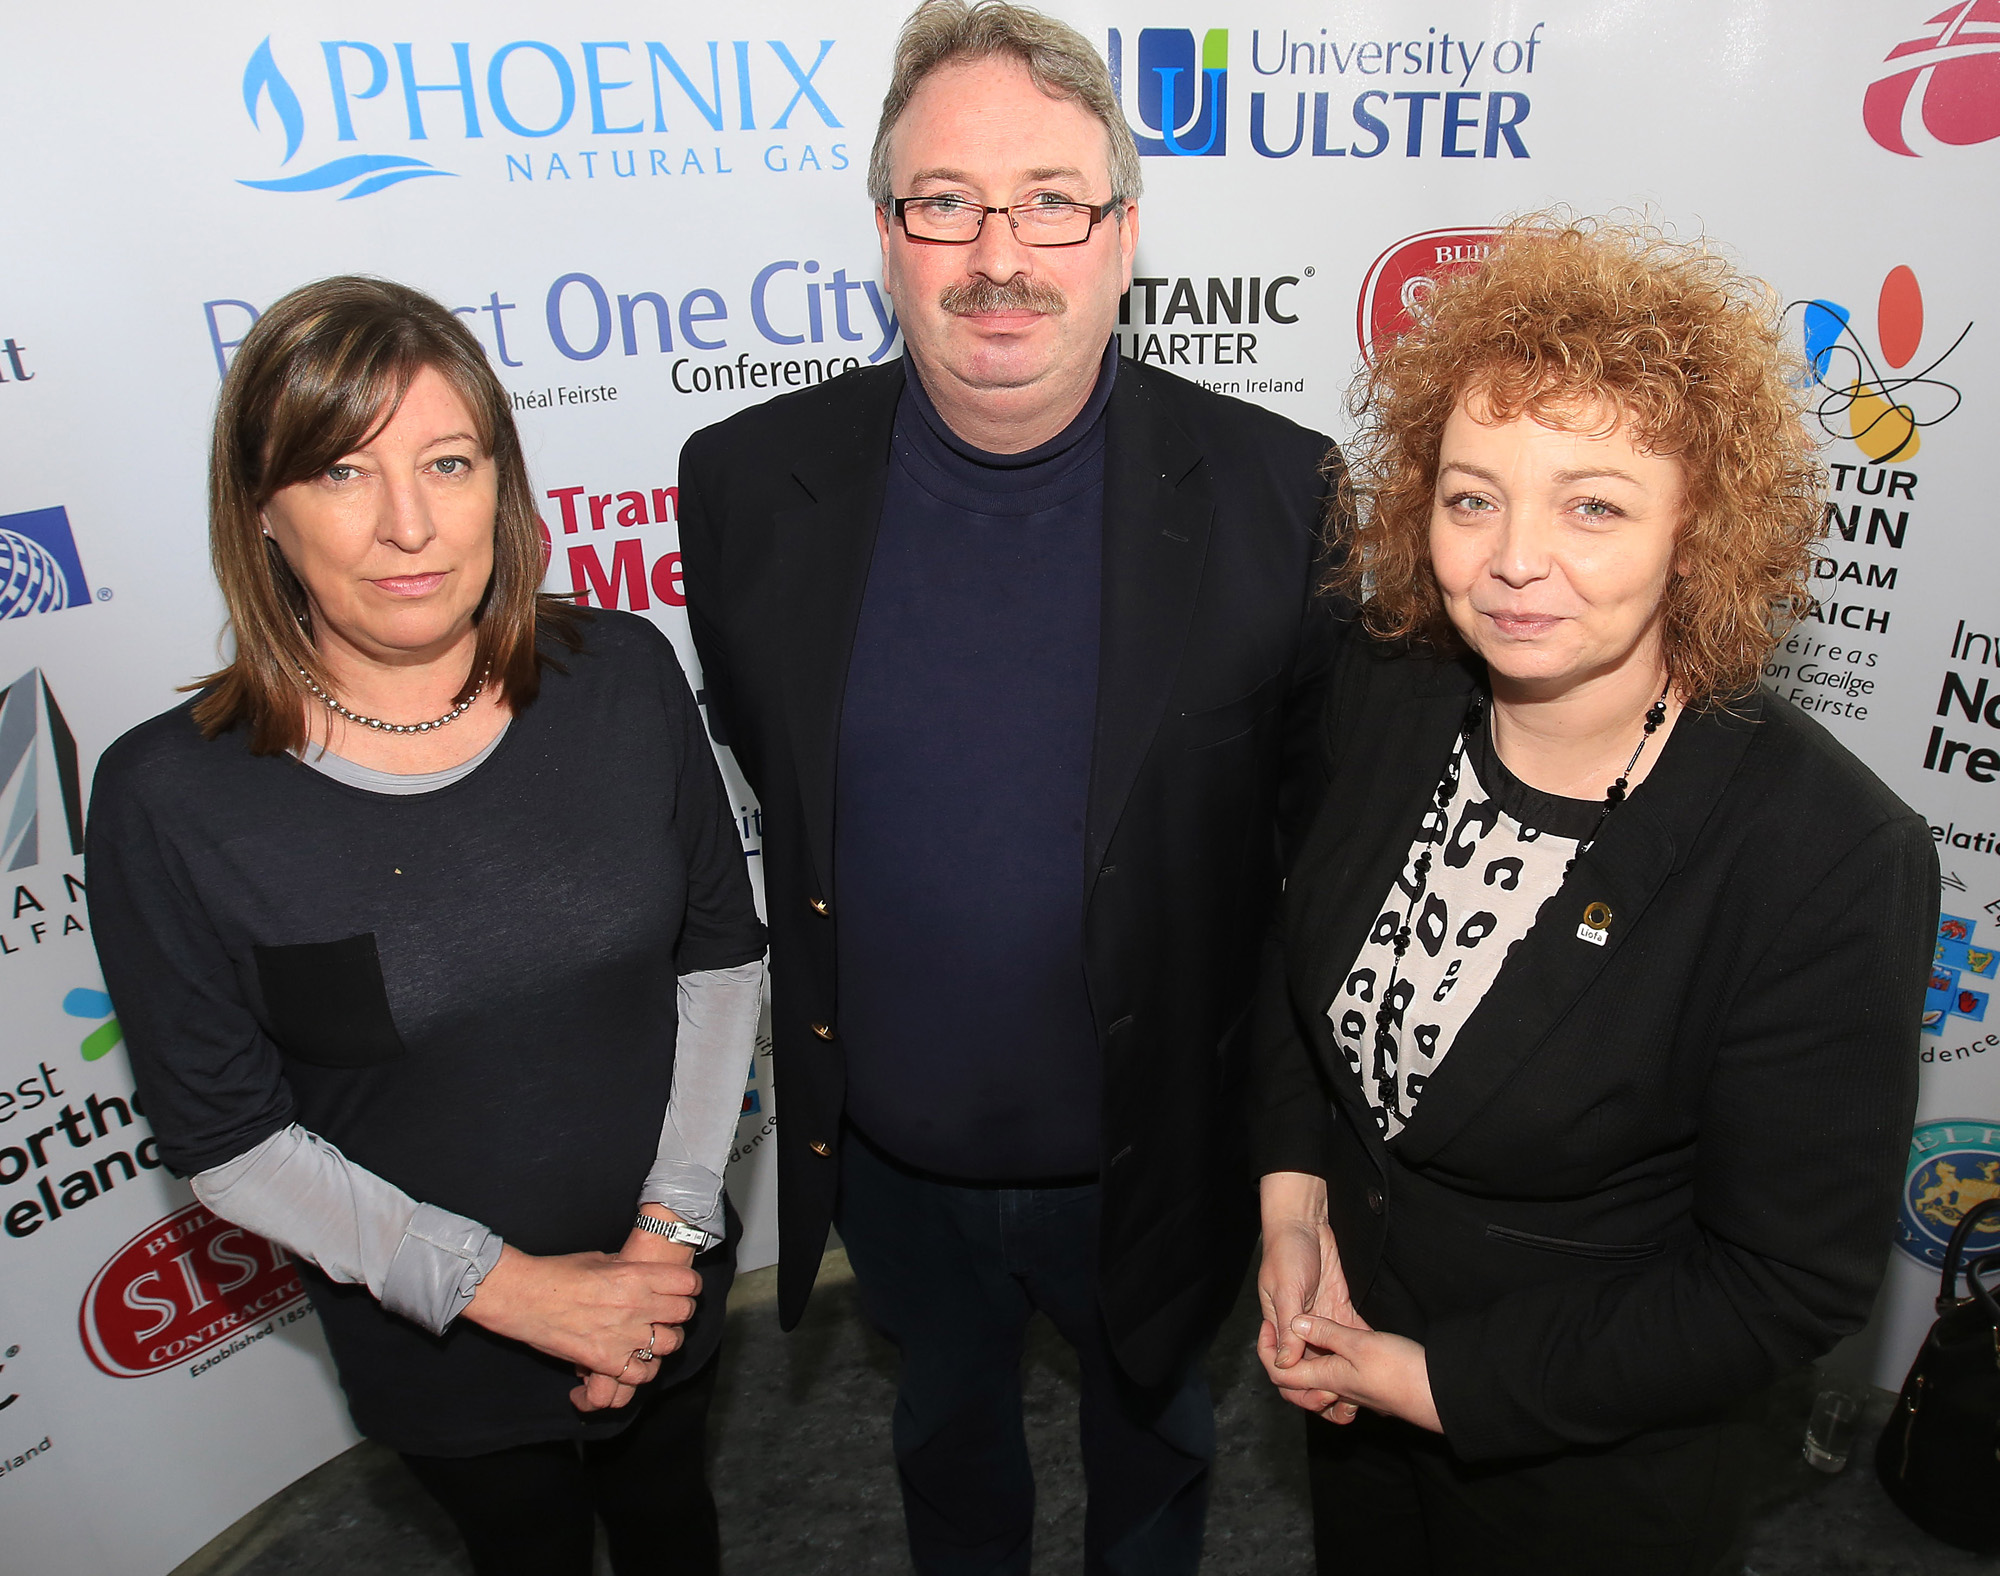 Belfast MET E3, One City Conference 'Lifting the City'. pictured: Caral Ni Chuilin MLA, Mary Carlin and Stephen McMurrough 95JC13